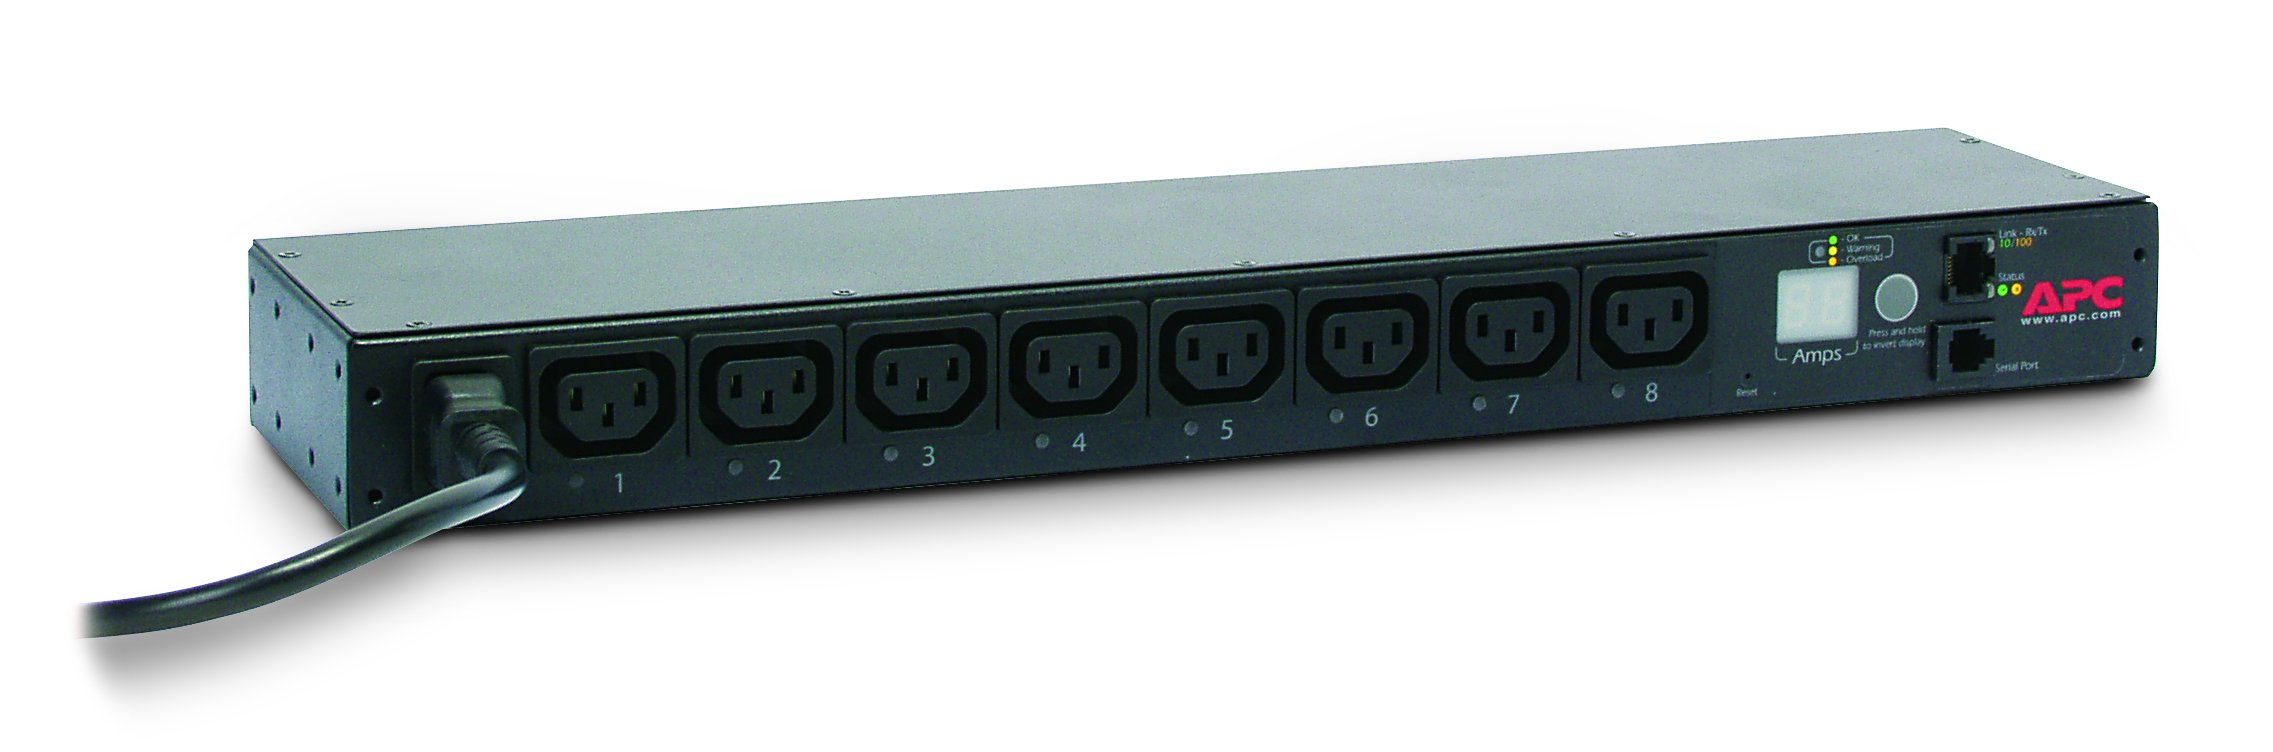 APC External Power Distribution Strip - External Black (AP7920B)